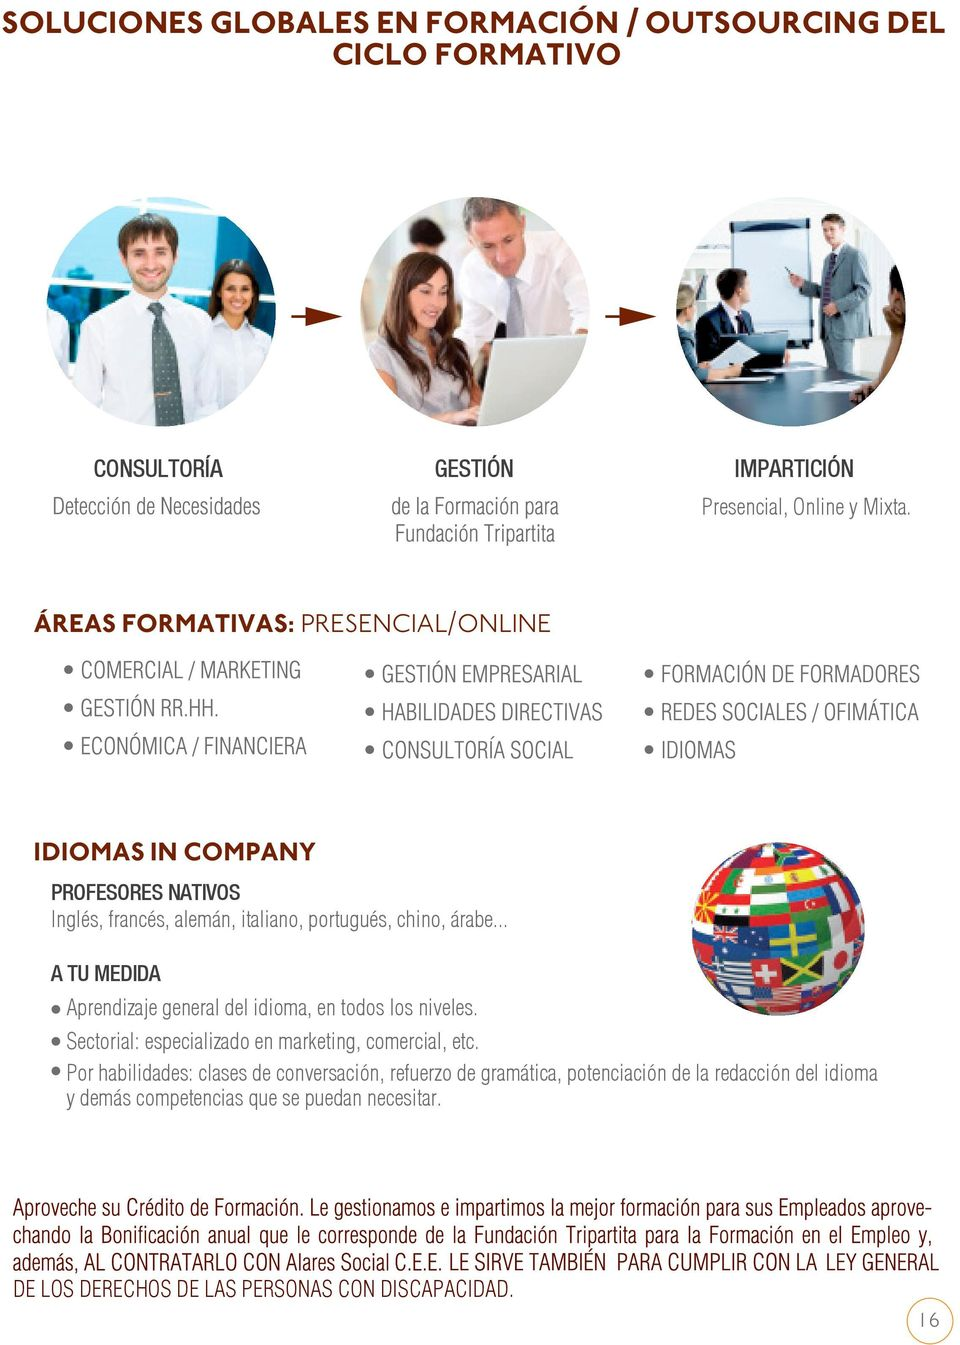 .. A TU MEDIDA Aprendizaje general del idioma, en todos los niveles. Sectorial: especializado en marketing, comercial, etc.